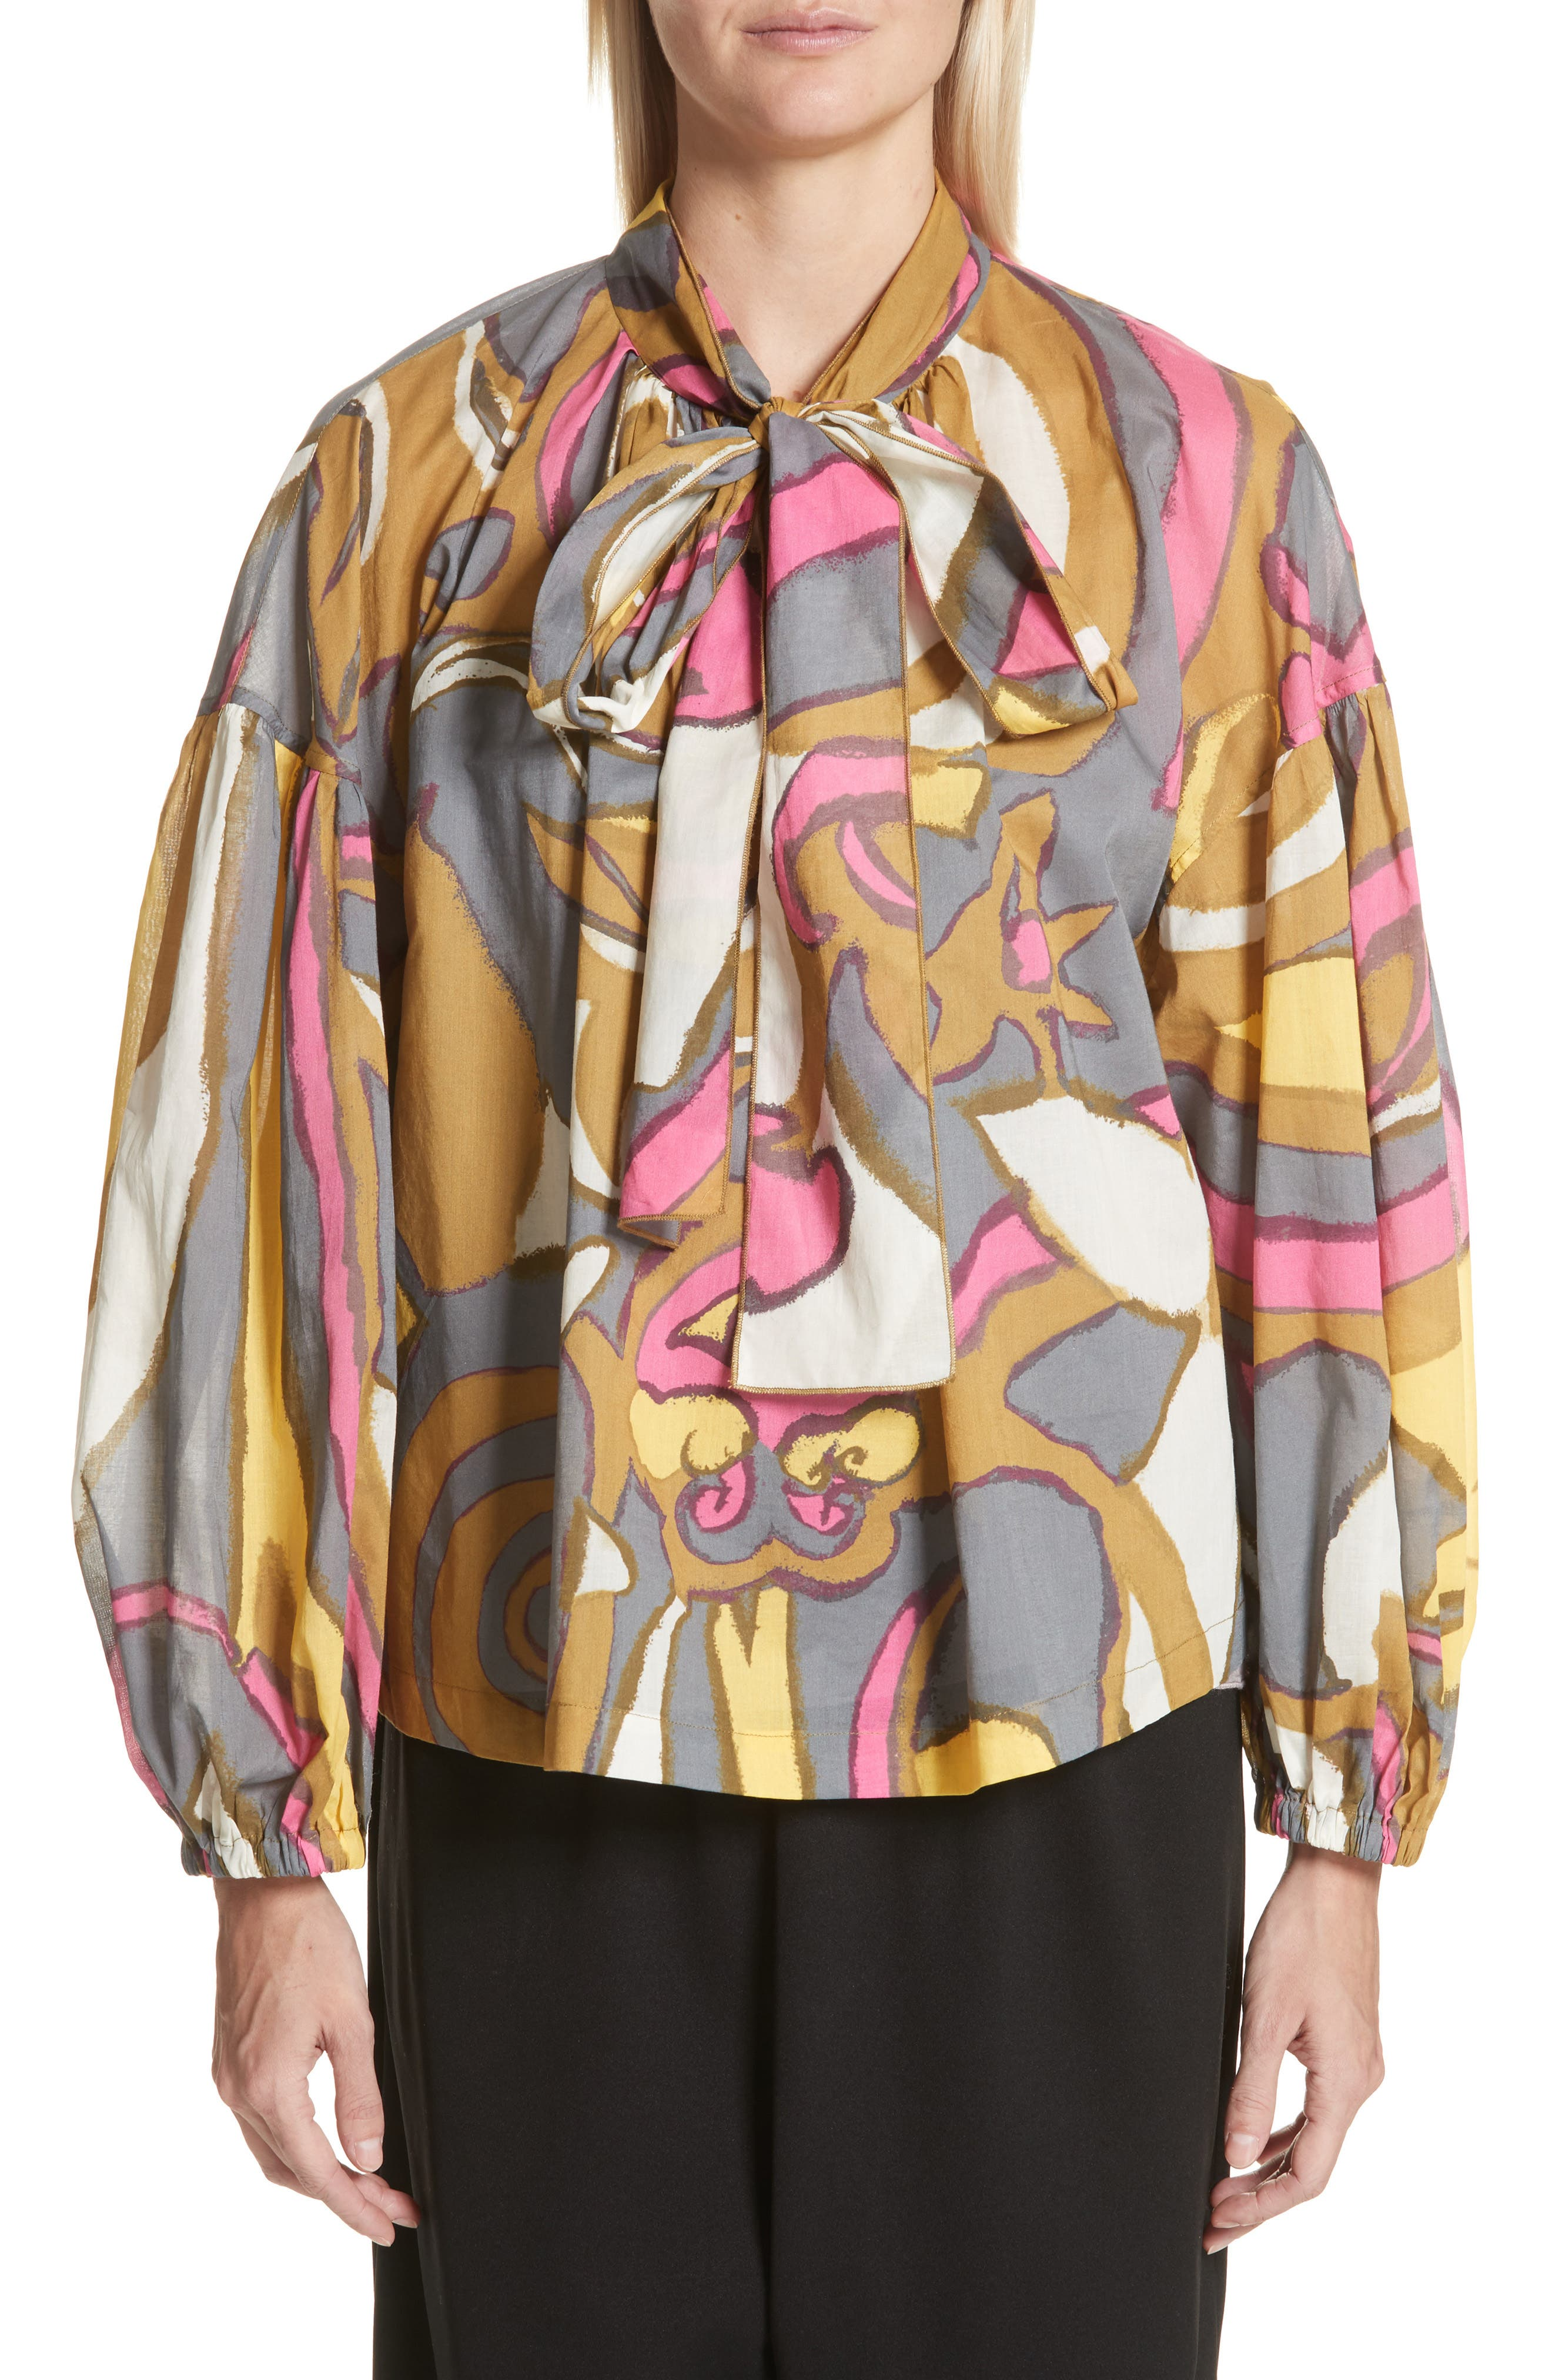 MARC JACOBS Tie Neck Retro Print Blouse